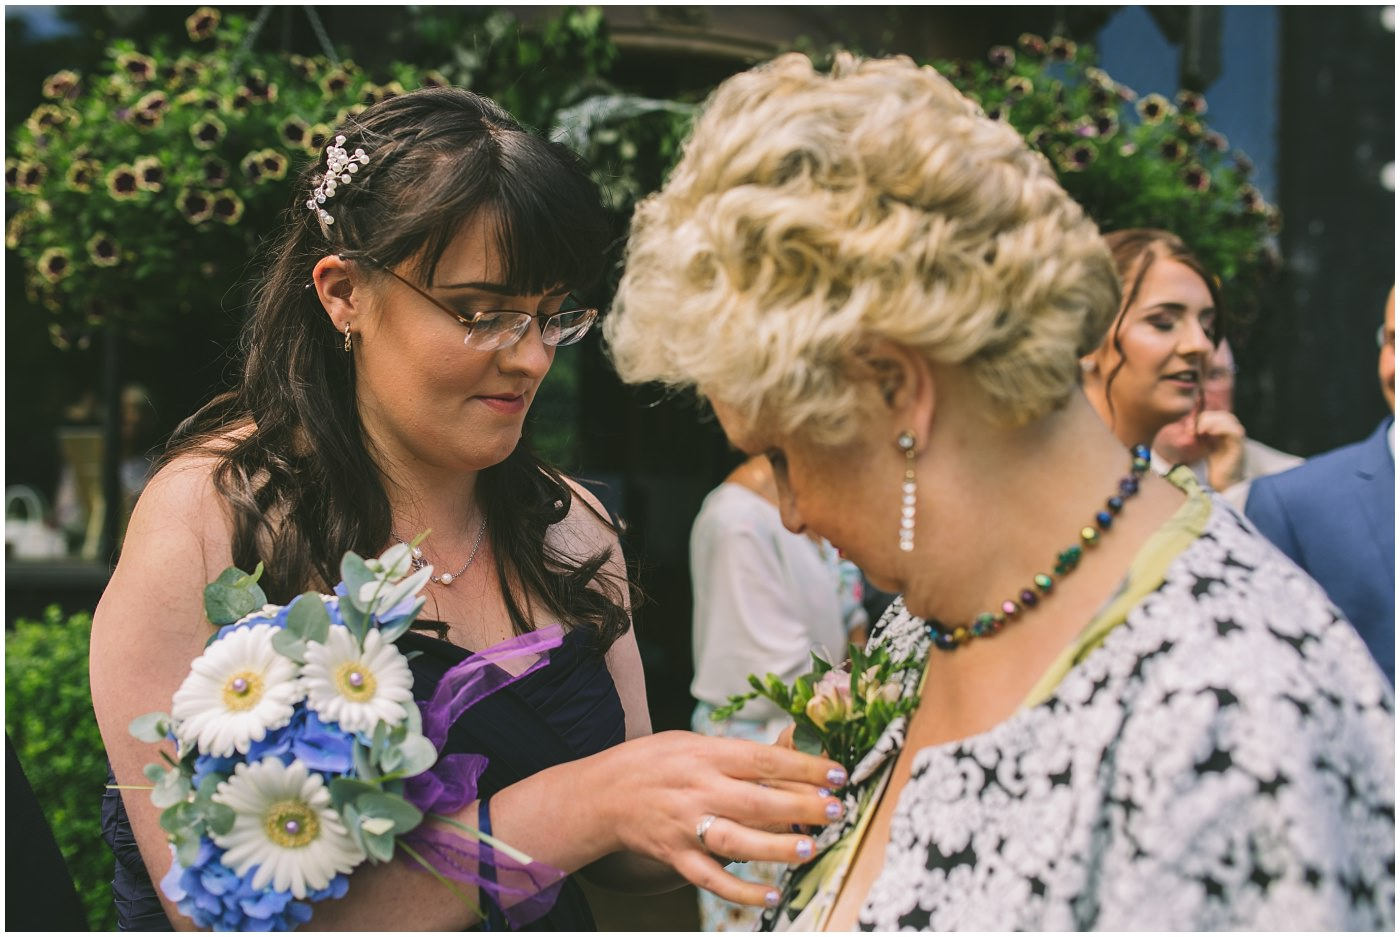 button hole being applied by a bridesmaid